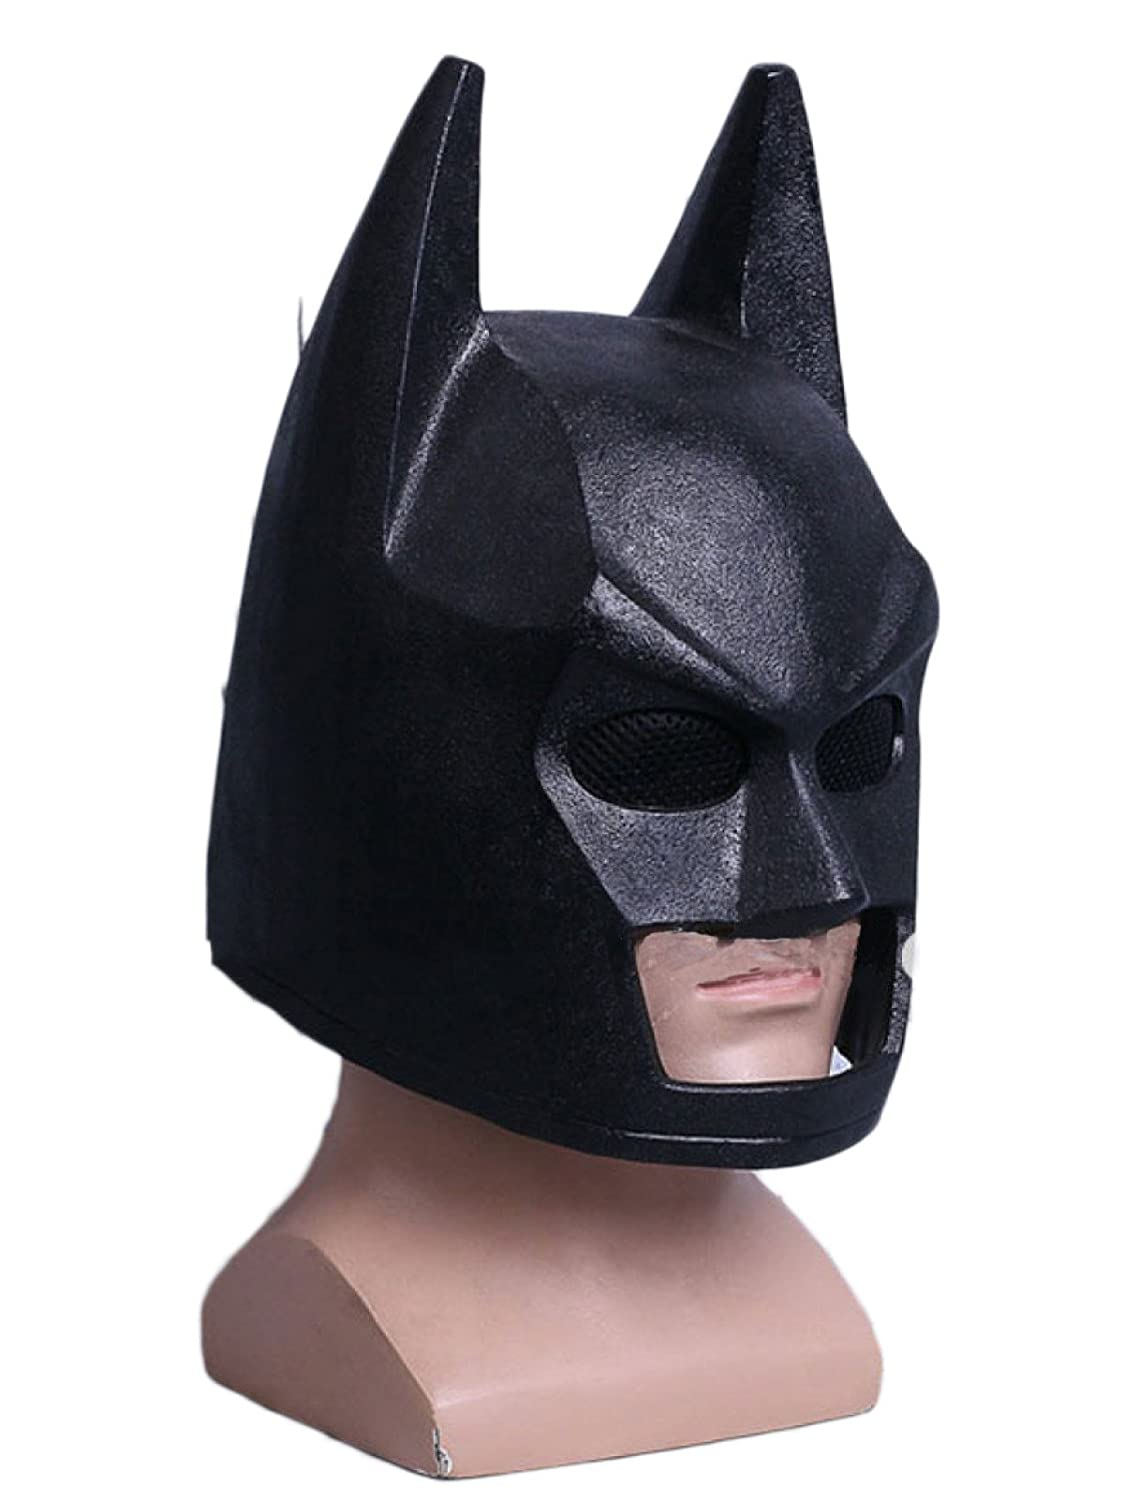 Cosplay Máscara Batman Casco Máscara Cosplay Halloween Cos Mask Casco Props,LegoBatmanHelmet-OneSize: Amazon.es: Hogar